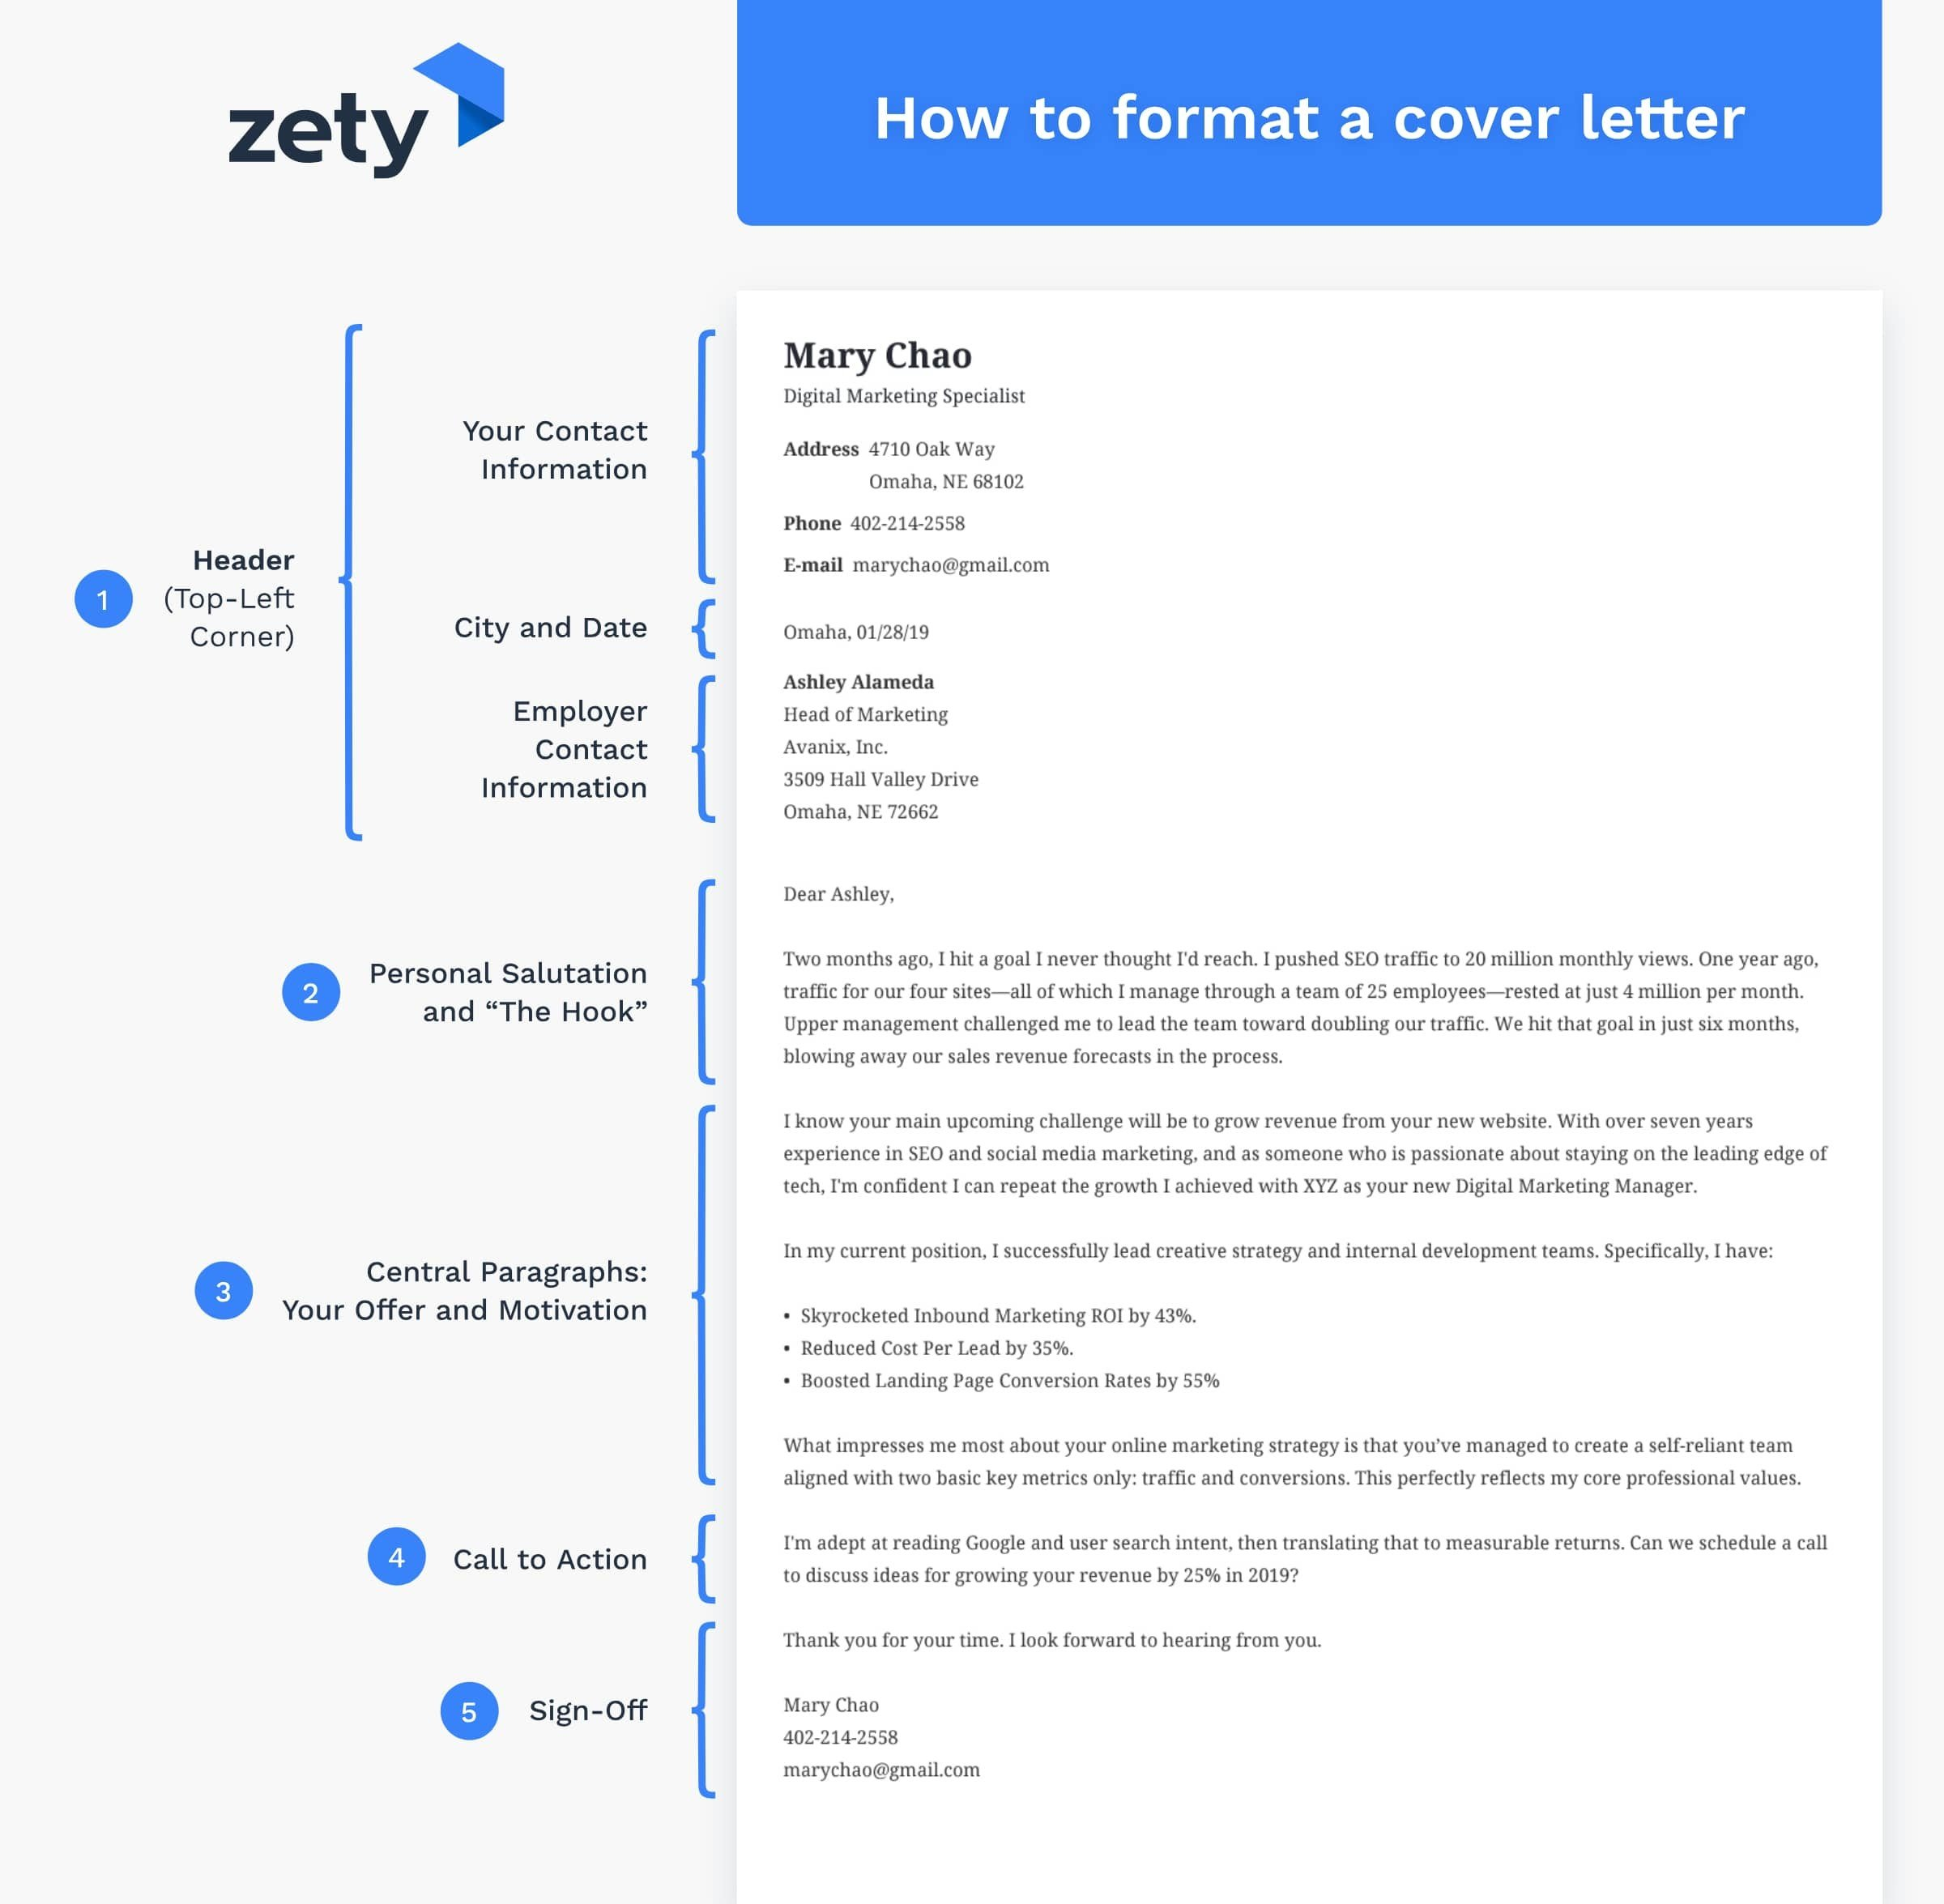 How To Format A Cover Letter In 2020 20 Proper Examples